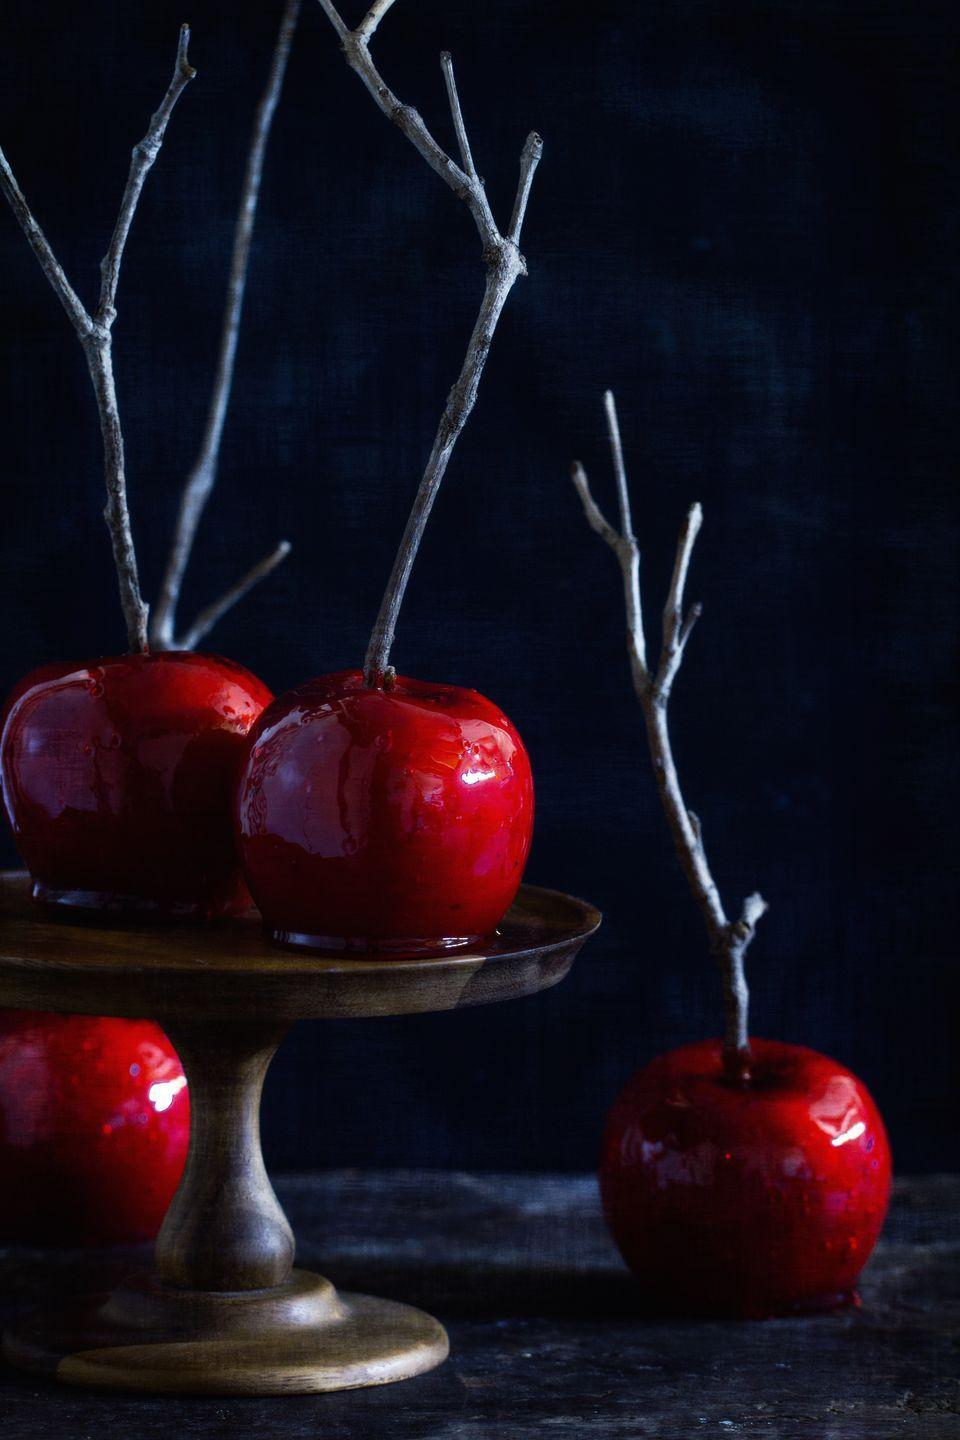 "<p>These candy apples are hot, hot, hot!</p><p>Get the recipe from <a href=""https://www.delish.com/cooking/recipe-ideas/recipes/a43935/candied-apples-recipe/"" rel=""nofollow noopener"" target=""_blank"" data-ylk=""slk:Delish"" class=""link rapid-noclick-resp"">Delish</a>. </p>"